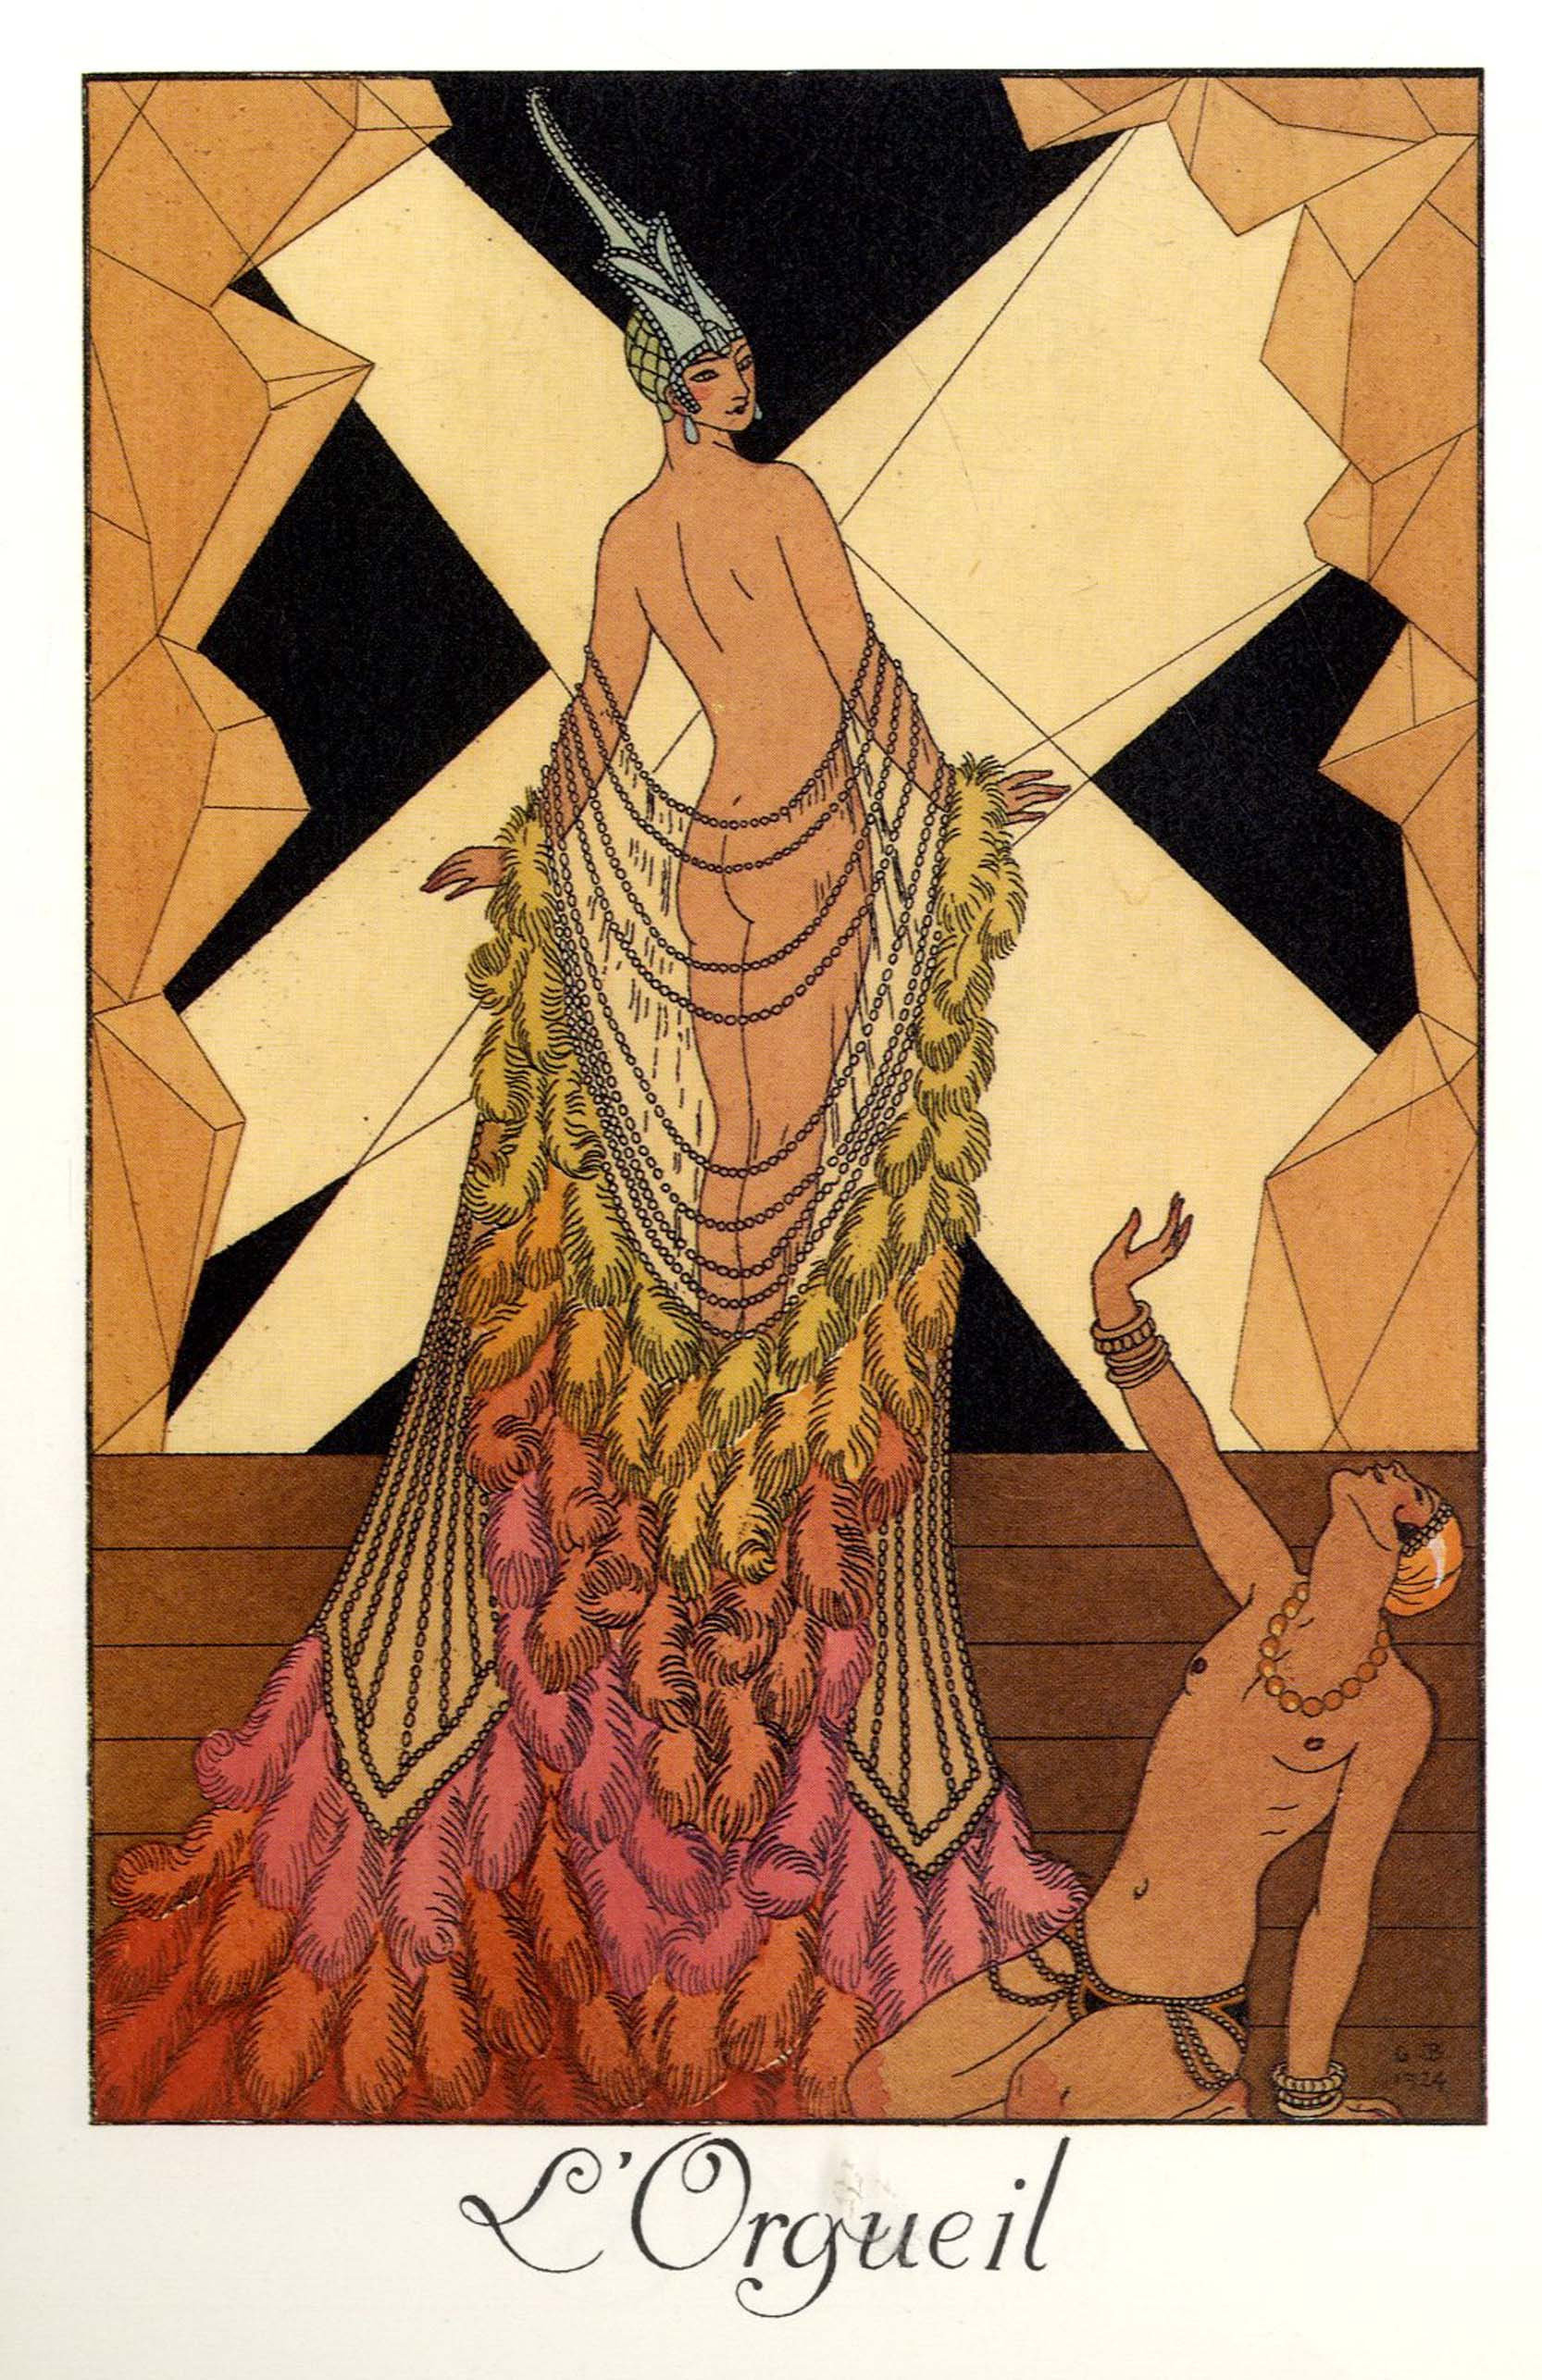 GEORGE BARBIER, The Seven Deadly Sins